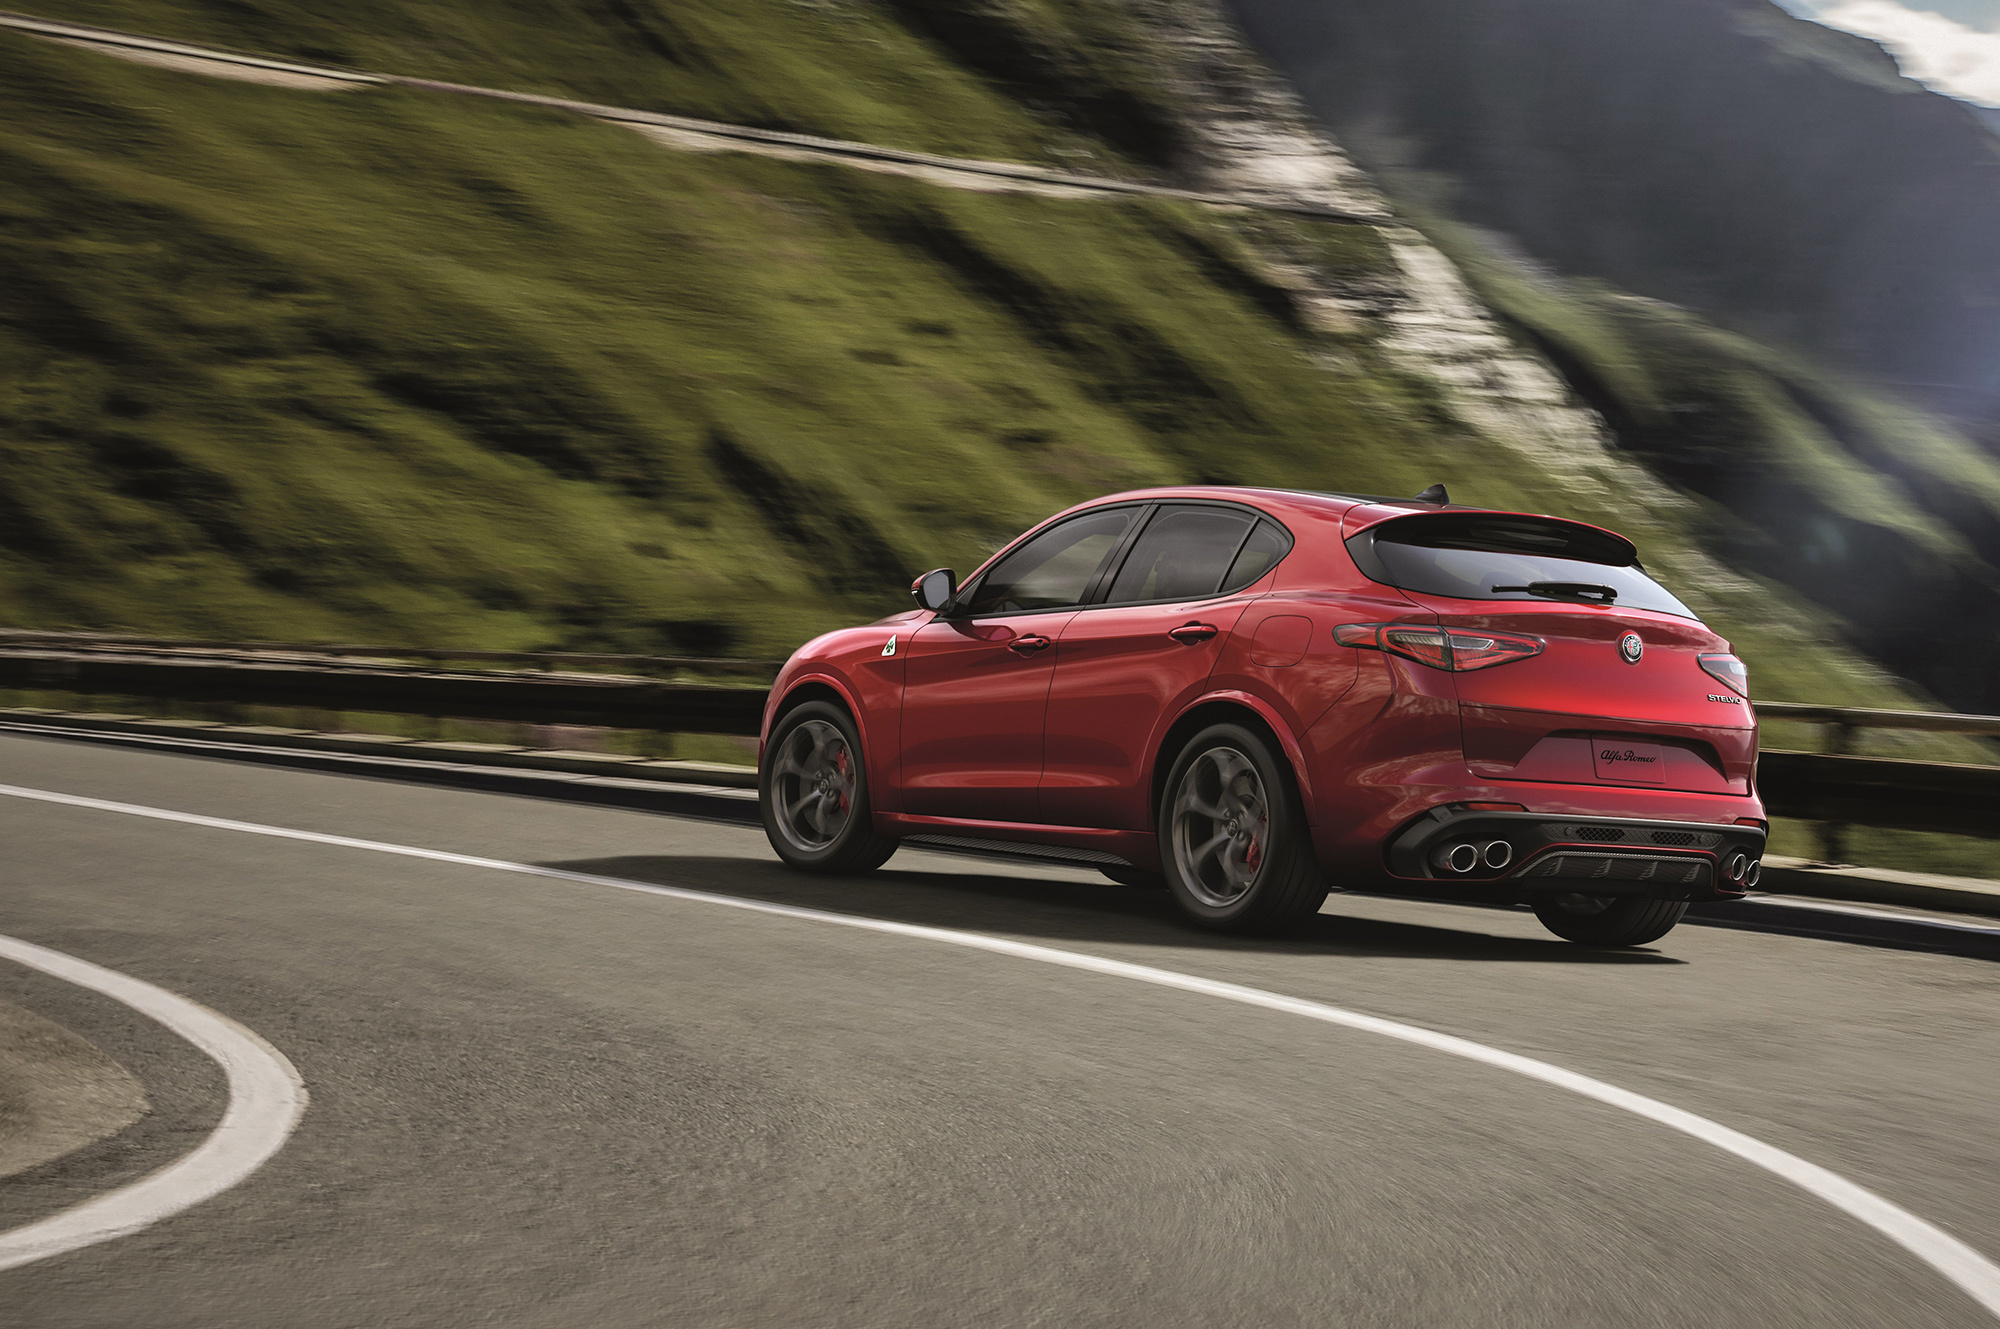 alfa romeo stelvio wallpapers images photos pictures backgrounds. Black Bedroom Furniture Sets. Home Design Ideas